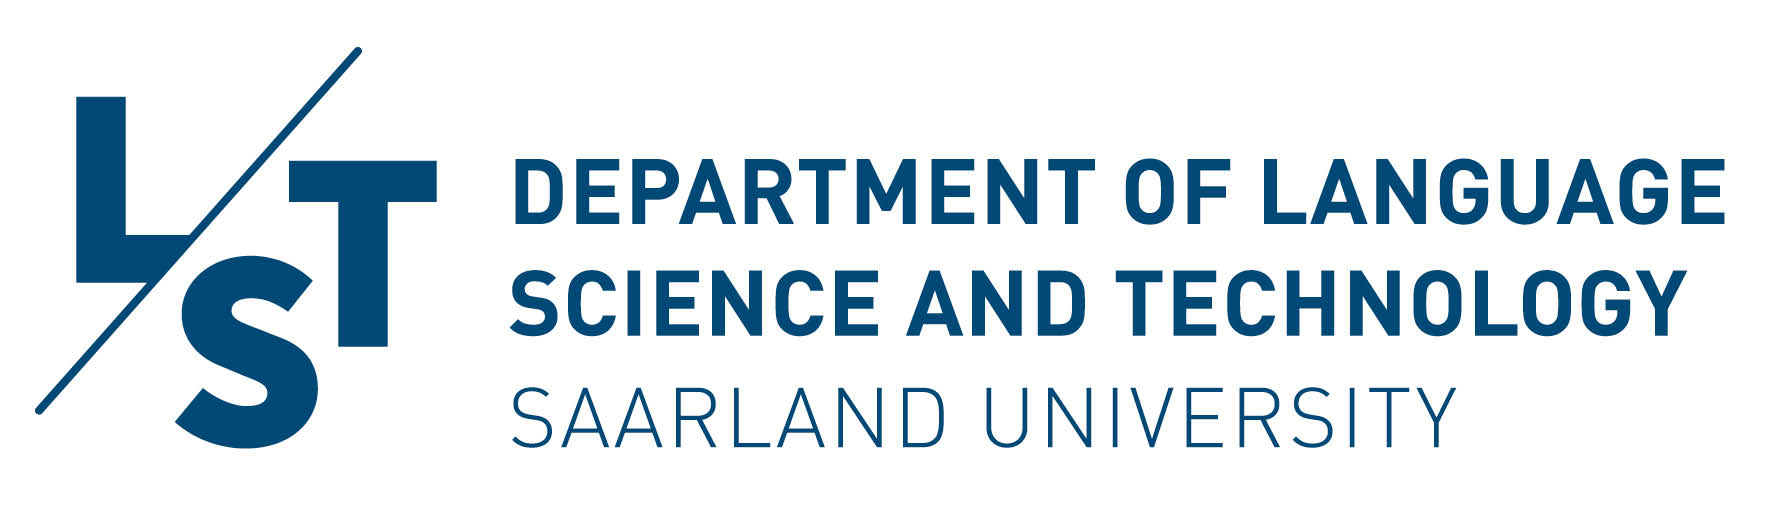 Saarland University Department of Language Science and Technology